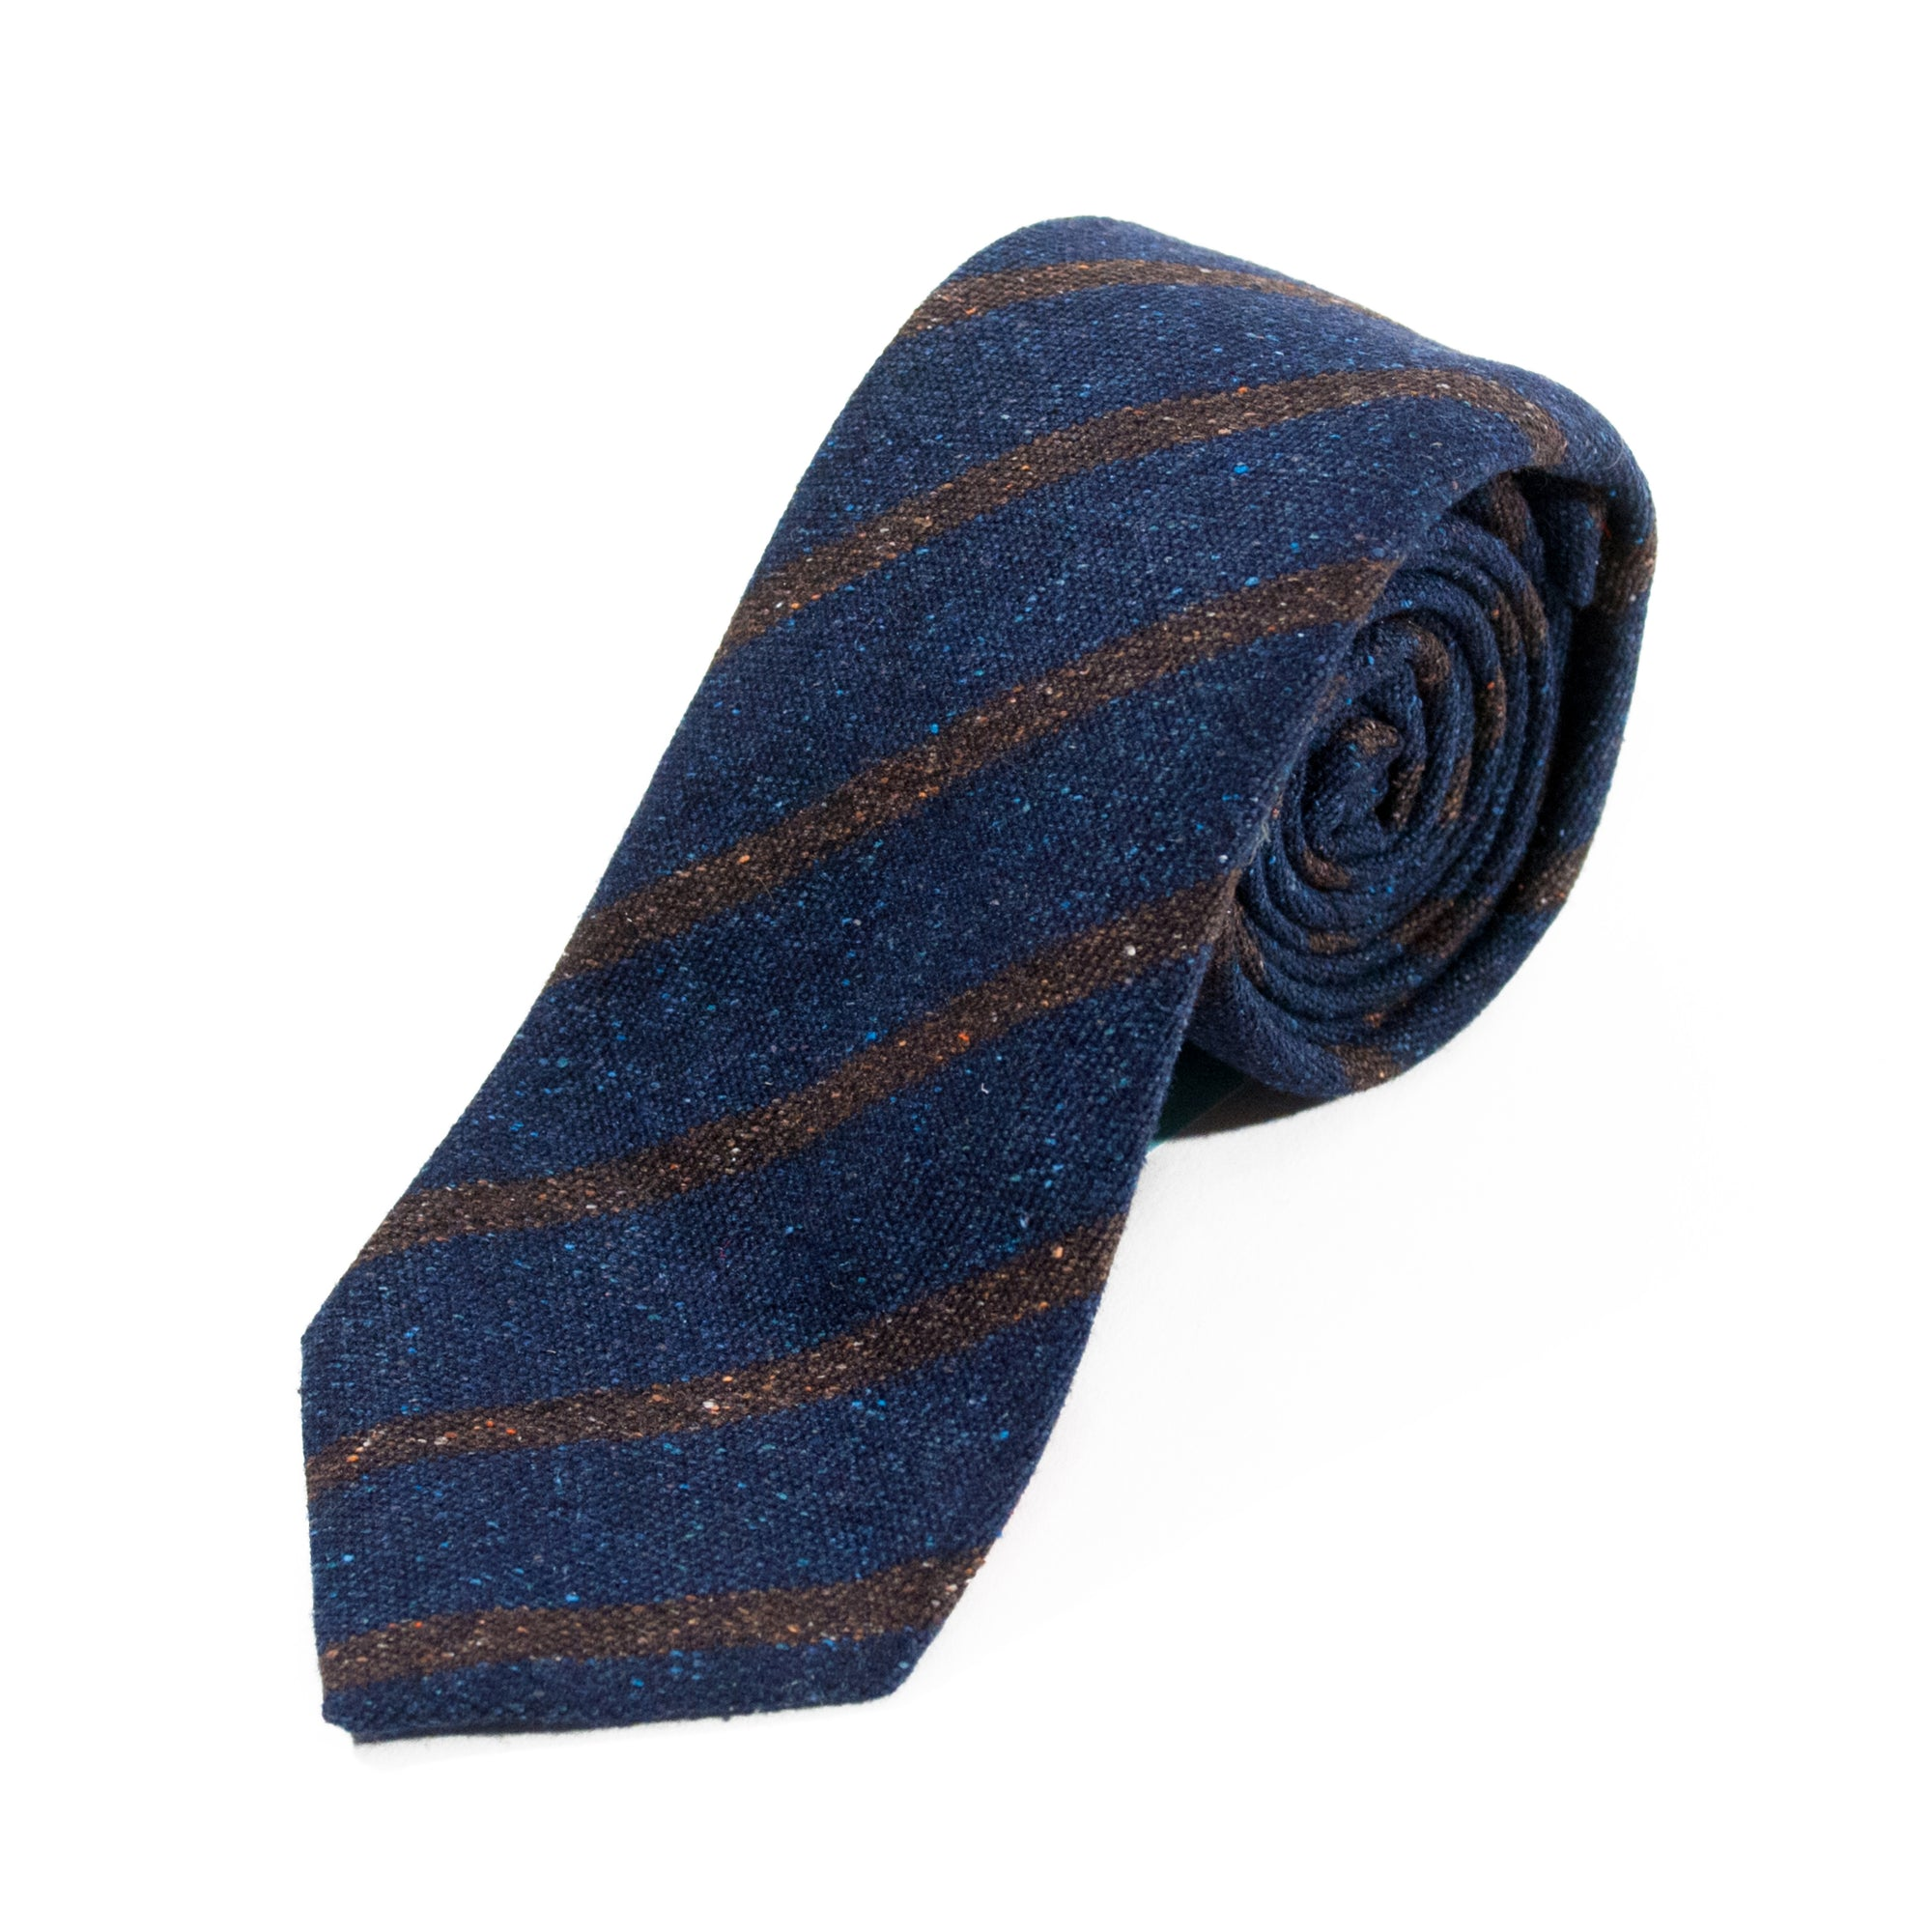 Isaia Navy Blue Striped Tie NWT